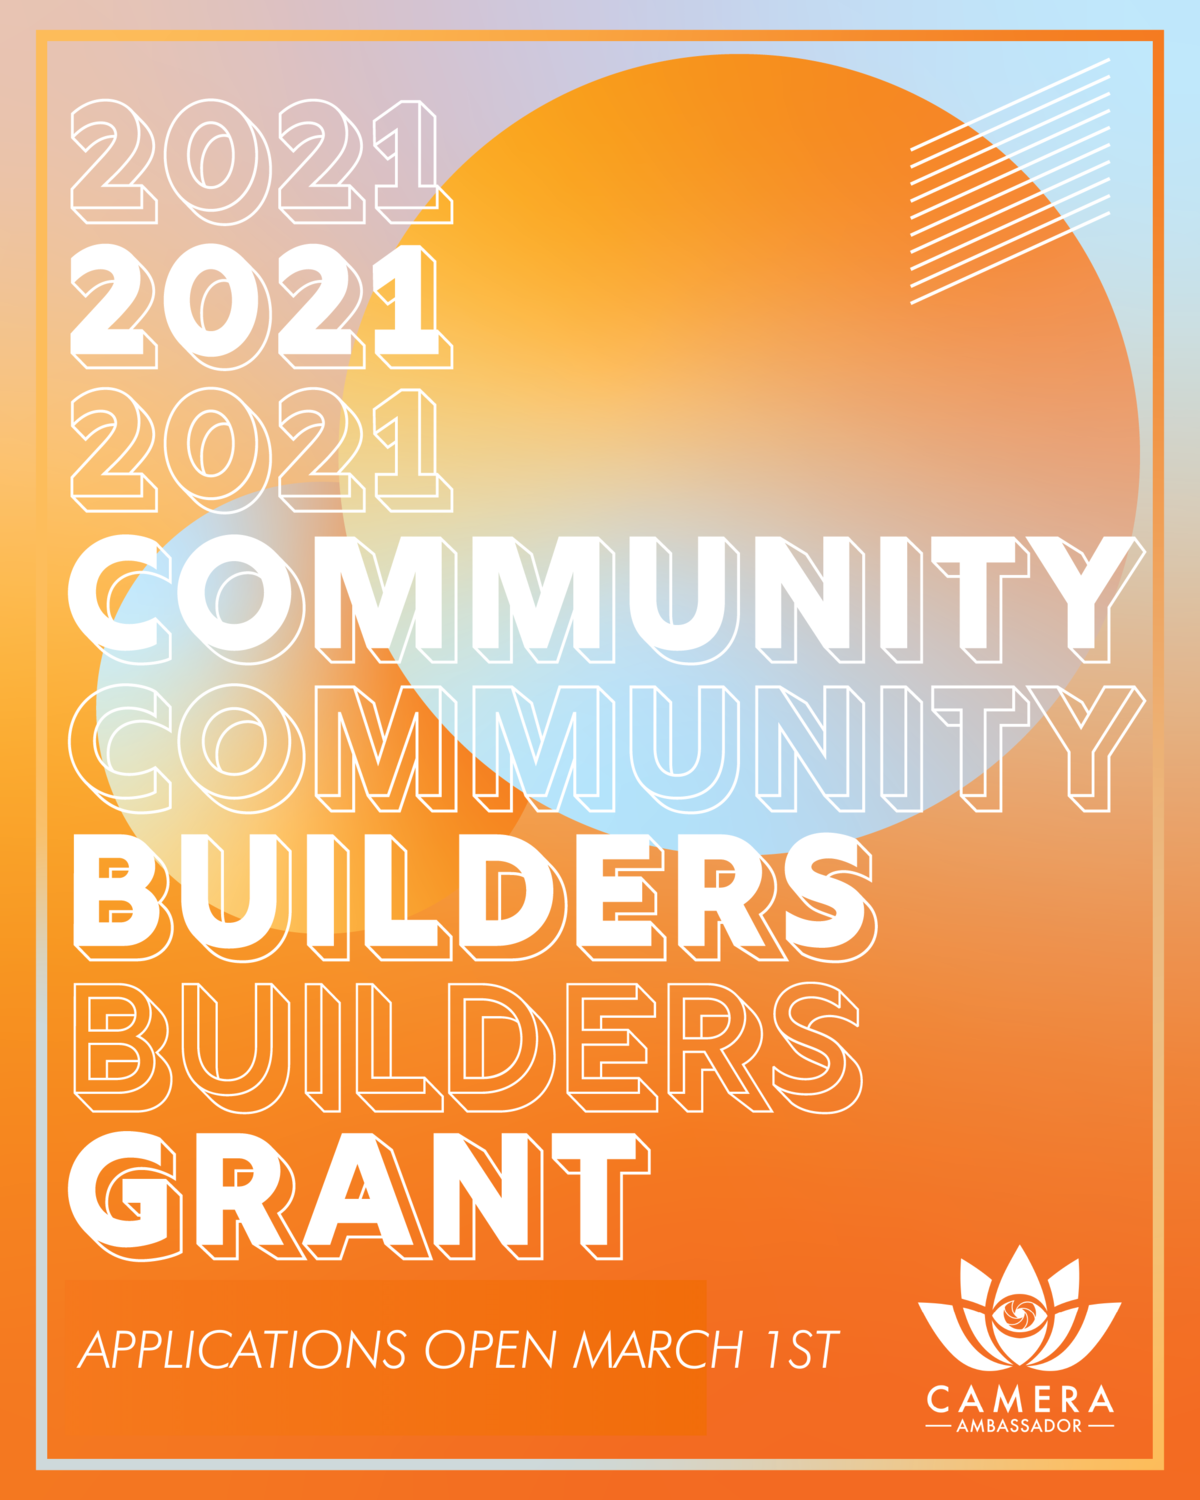 2021 Community Builders Grant. Applications Open March 1st